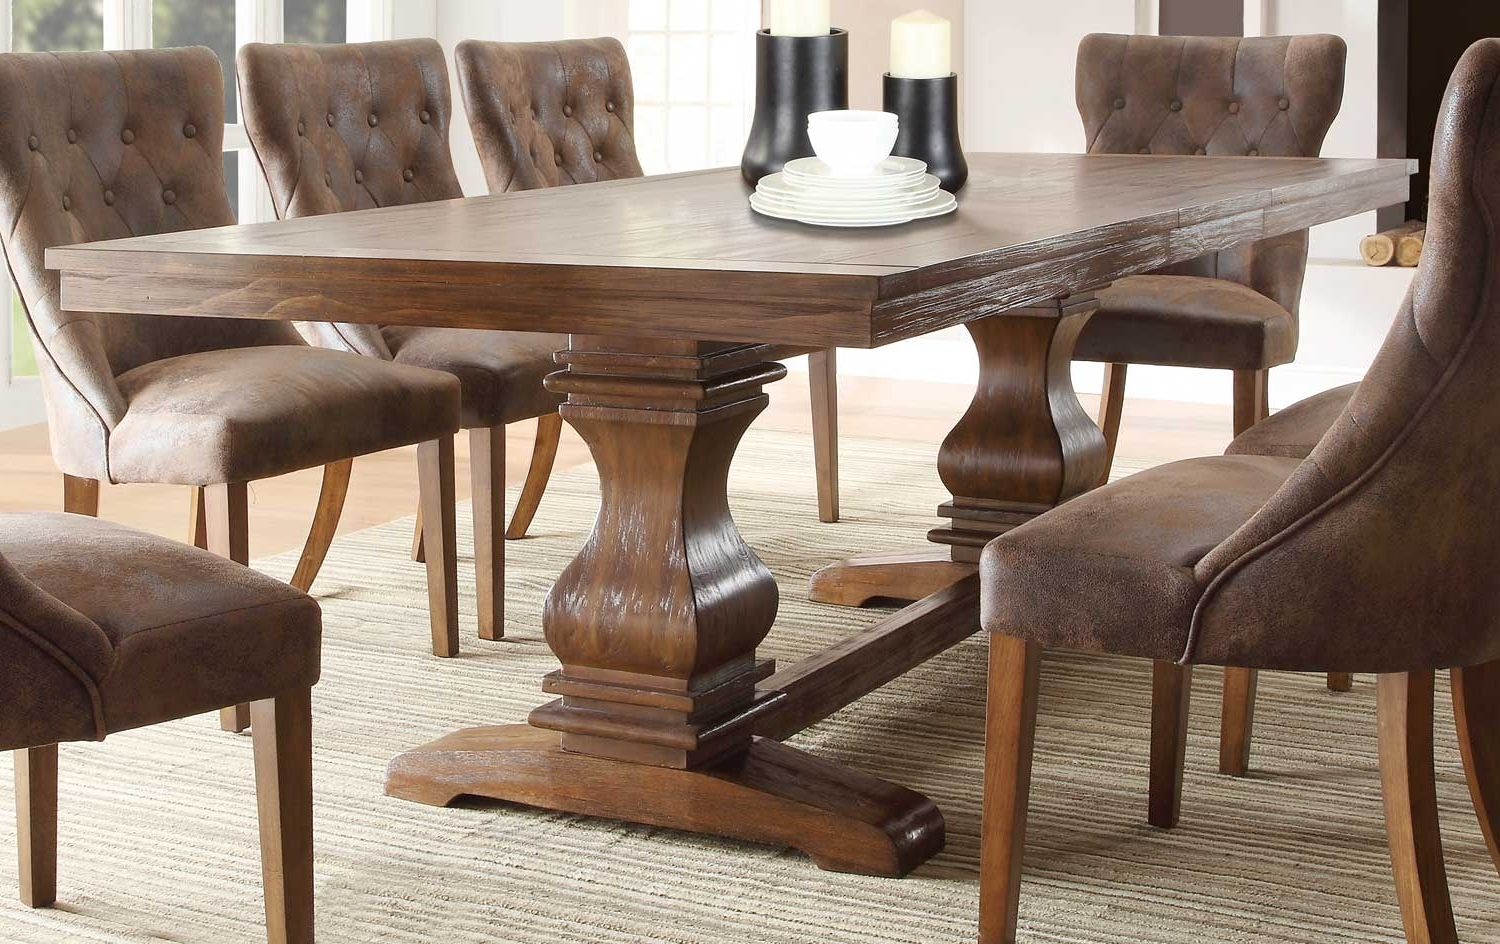 Homelegance Marie Louise Dining Table – Rustic Oak Brown 2526 96 With Regard To Trendy Rustic Oak Dining Tables (View 6 of 25)